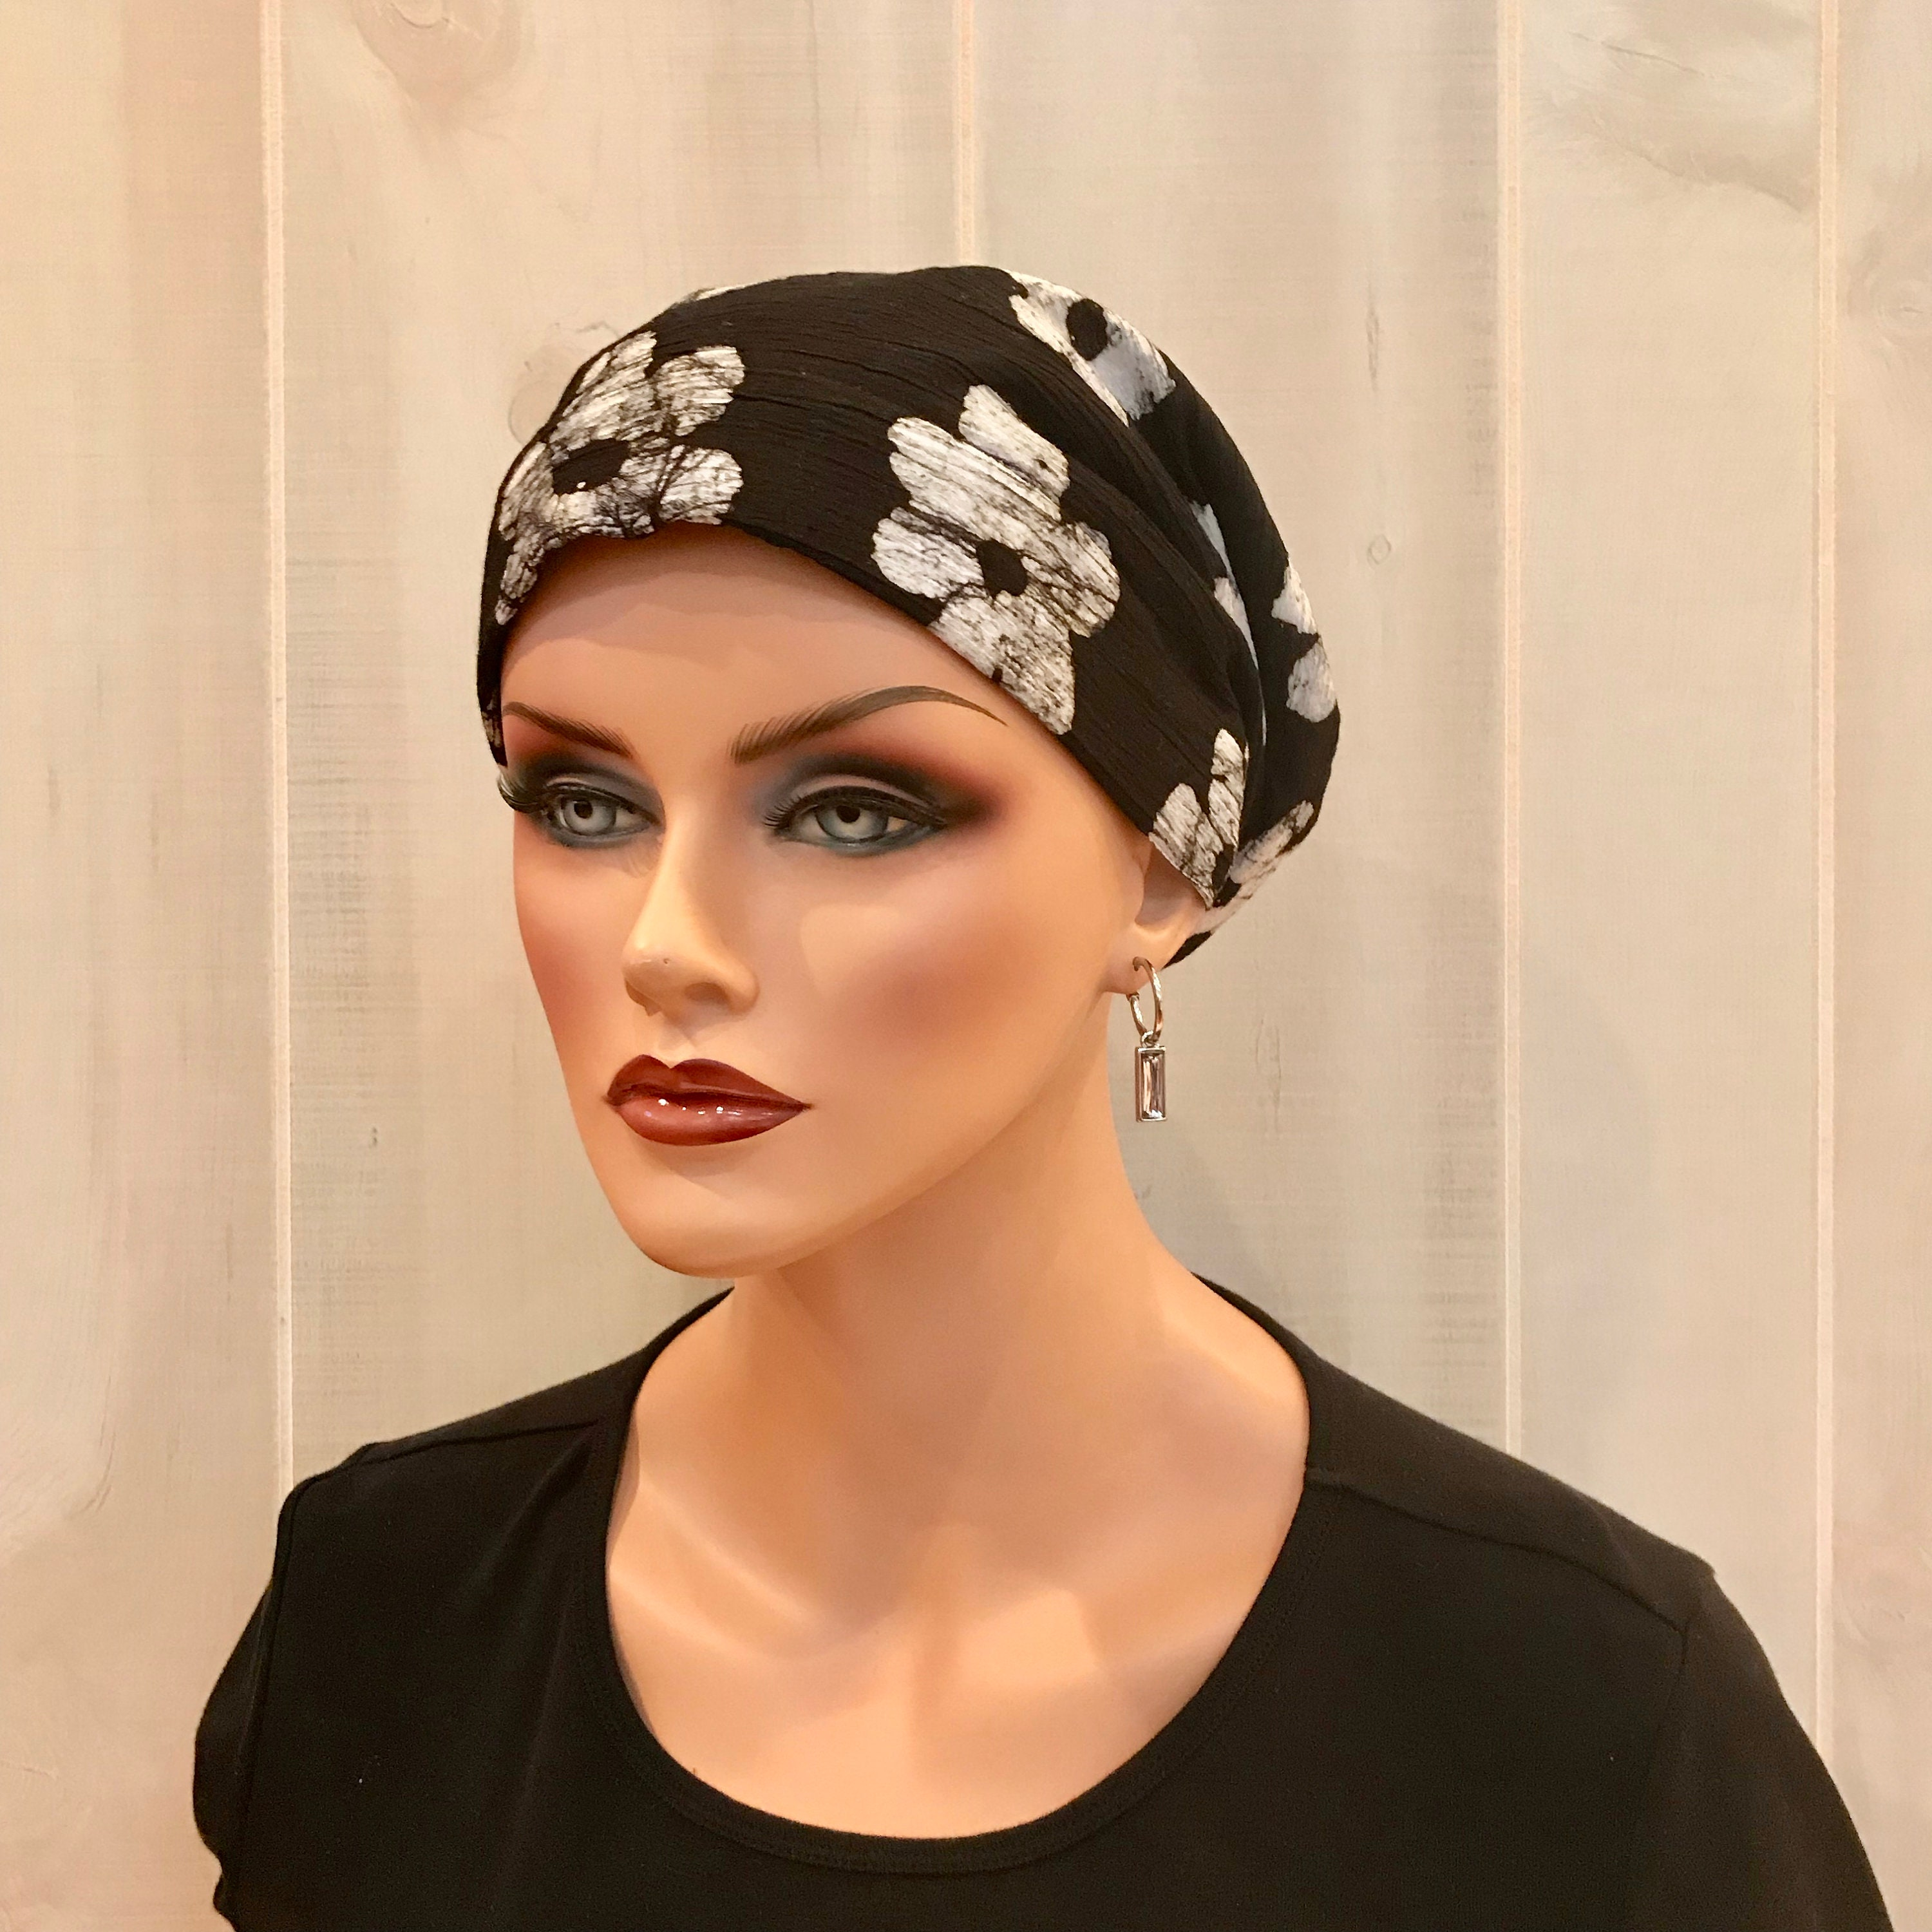 04e9512d3252f Women's Head Scarf, Cancer Headwear, Chemo Hat, Alopecia Head ...